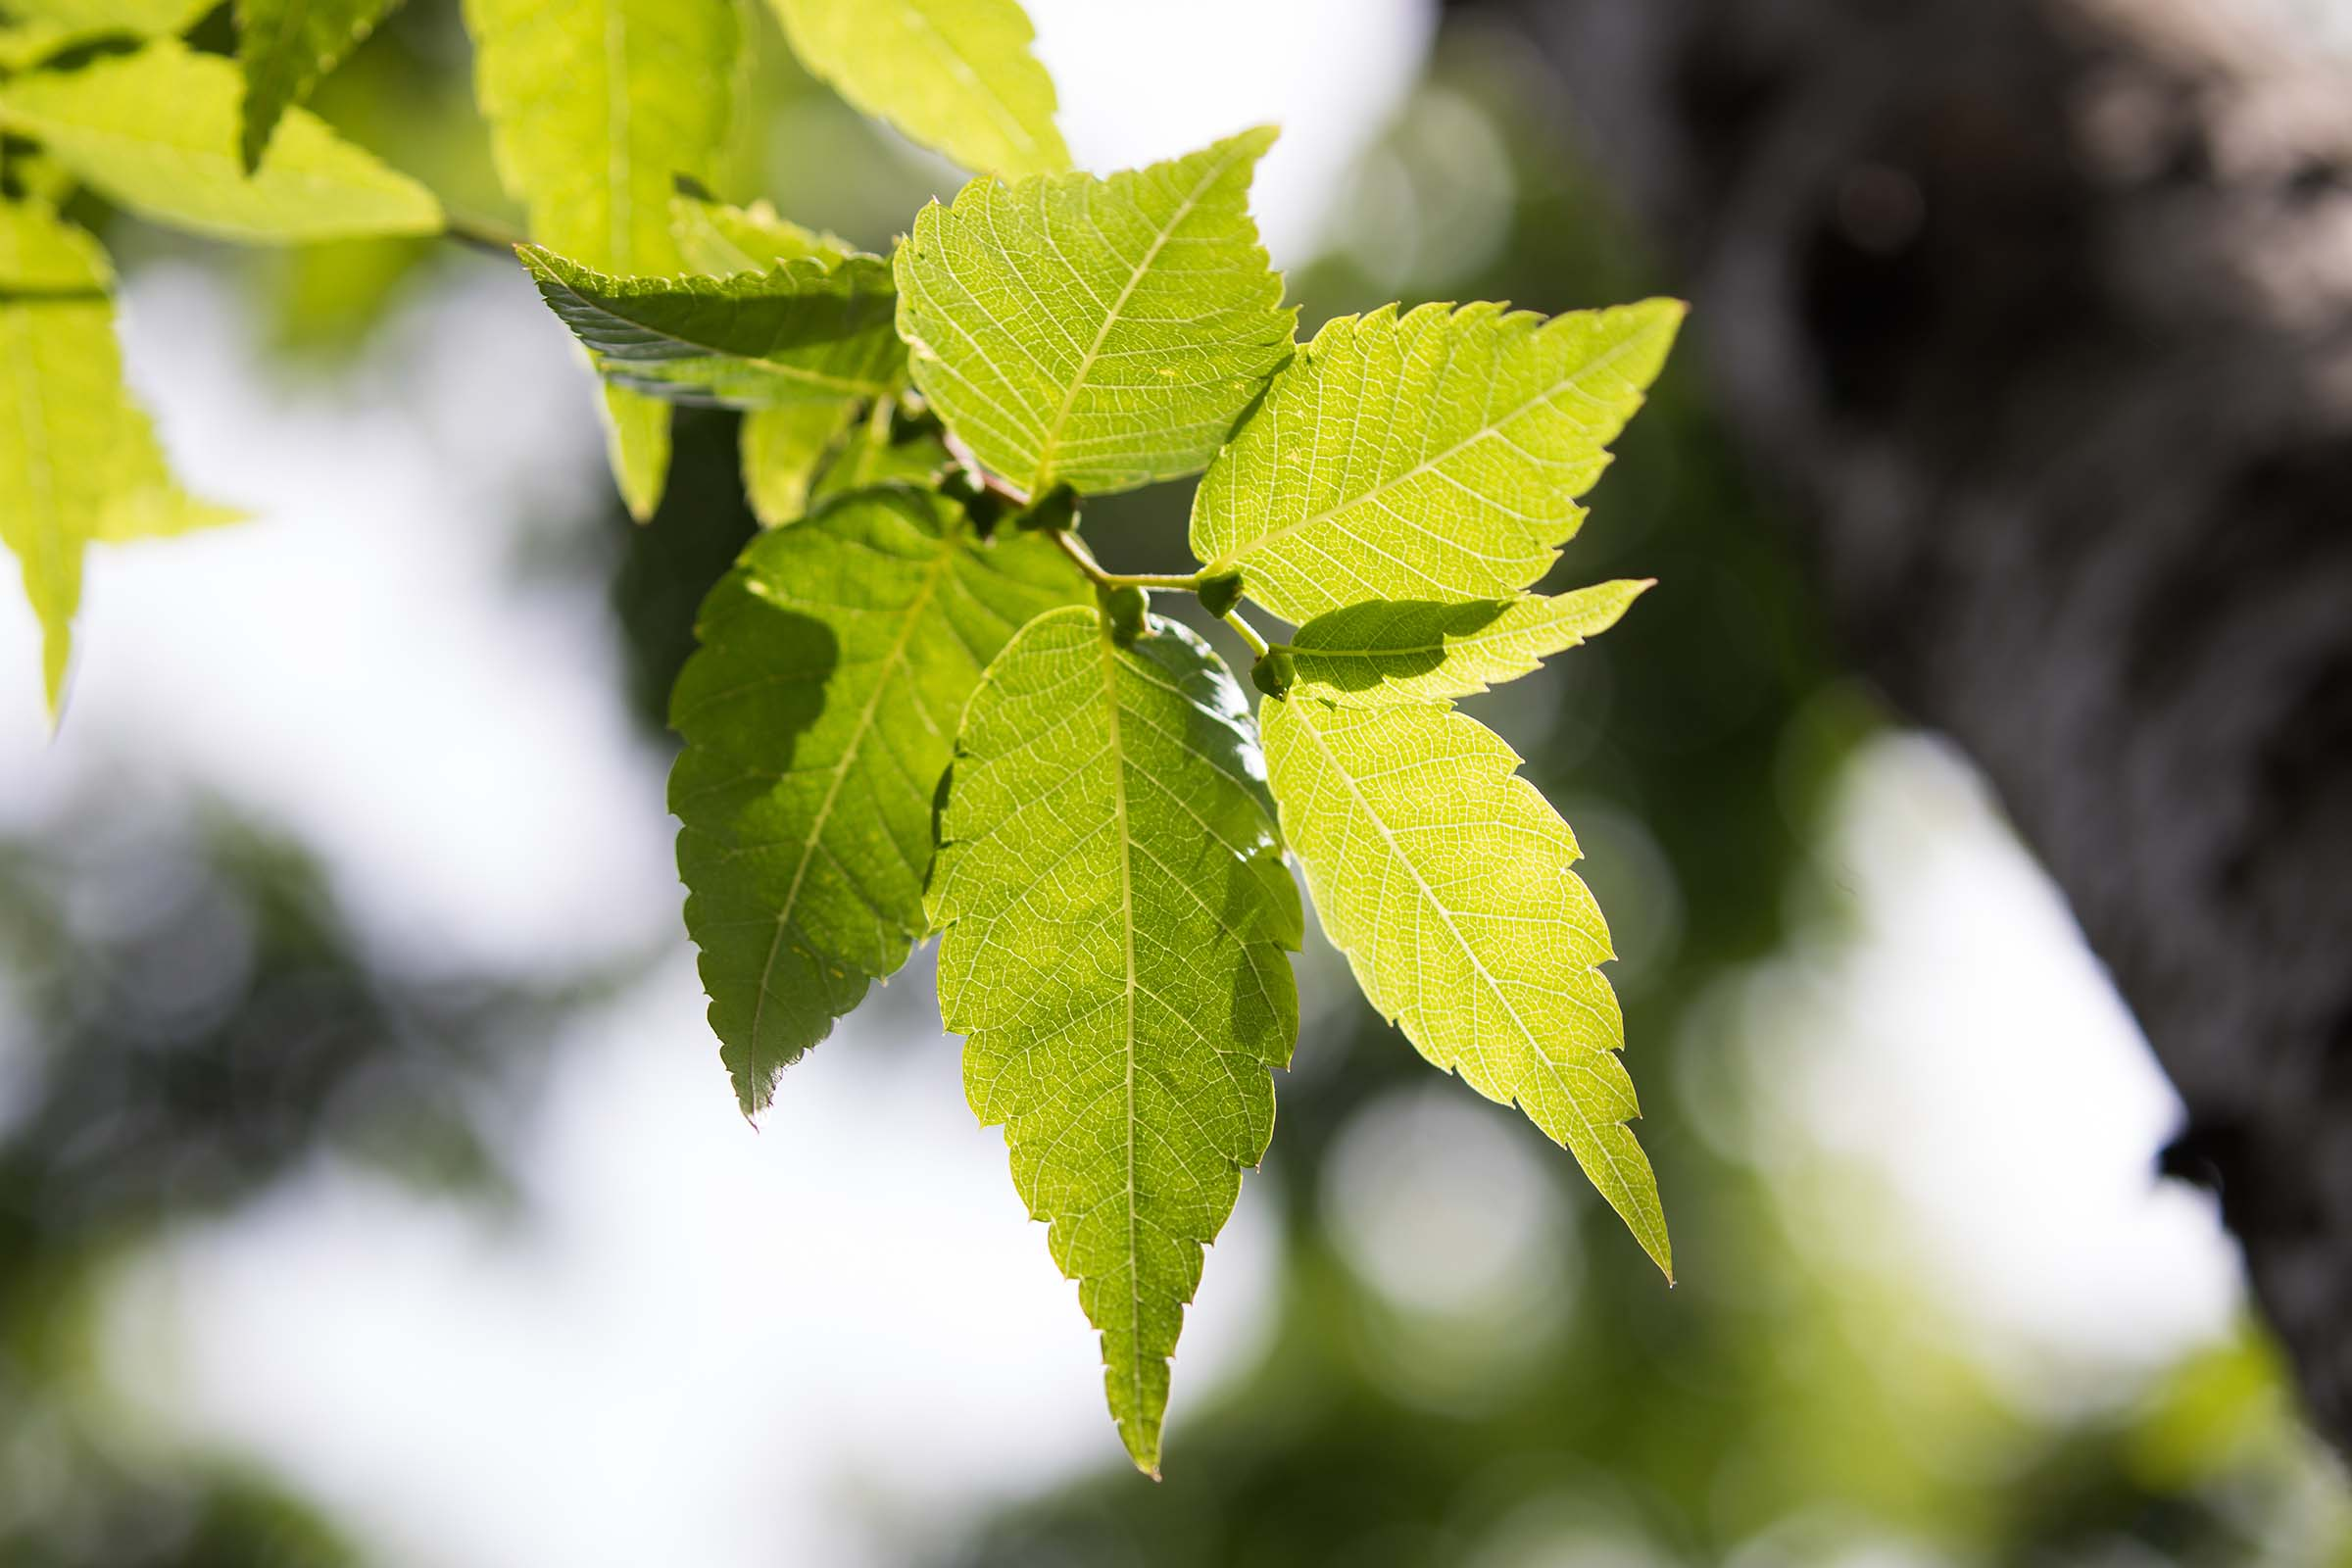 The green leaves on the Japanese Zelcova trees are pointed with jagged ridges around its sides